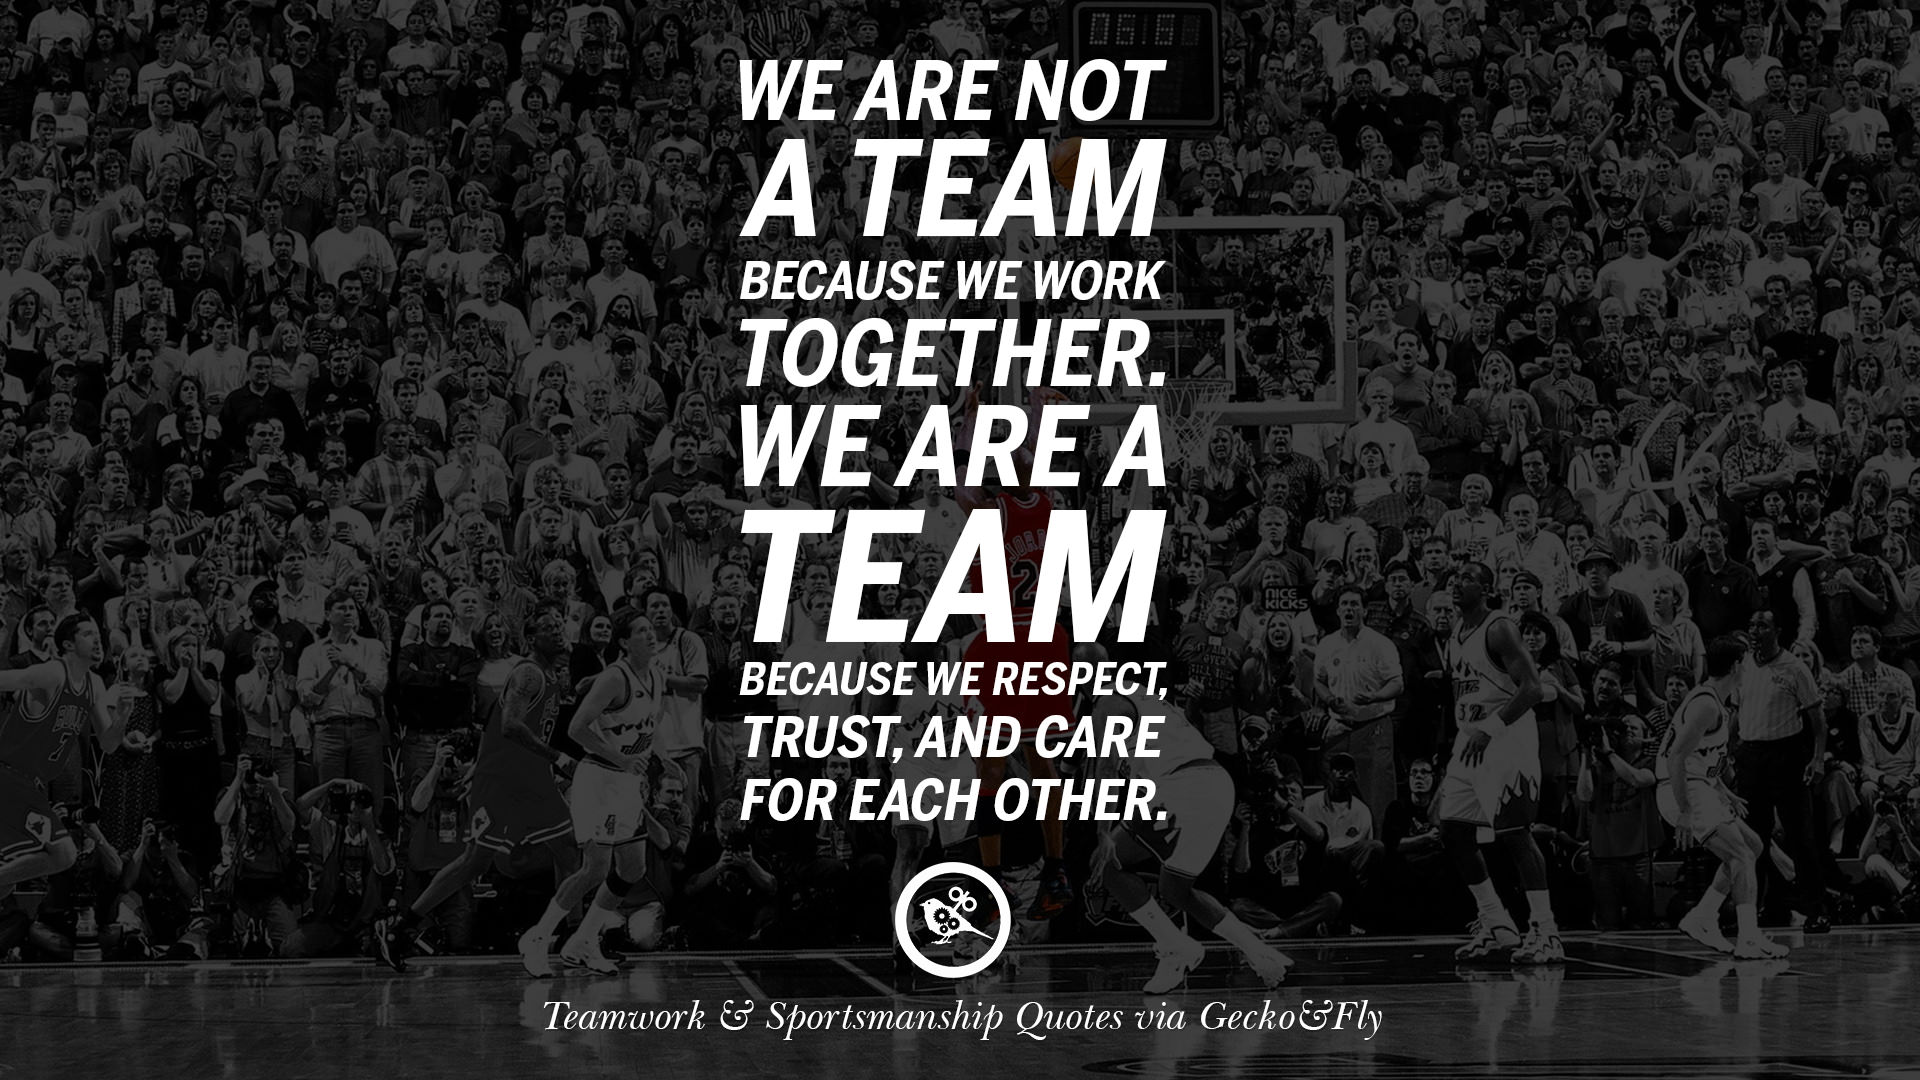 Quotes On Teamwork | 50 Inspirational Quotes About Teamwork And Sportsmanship